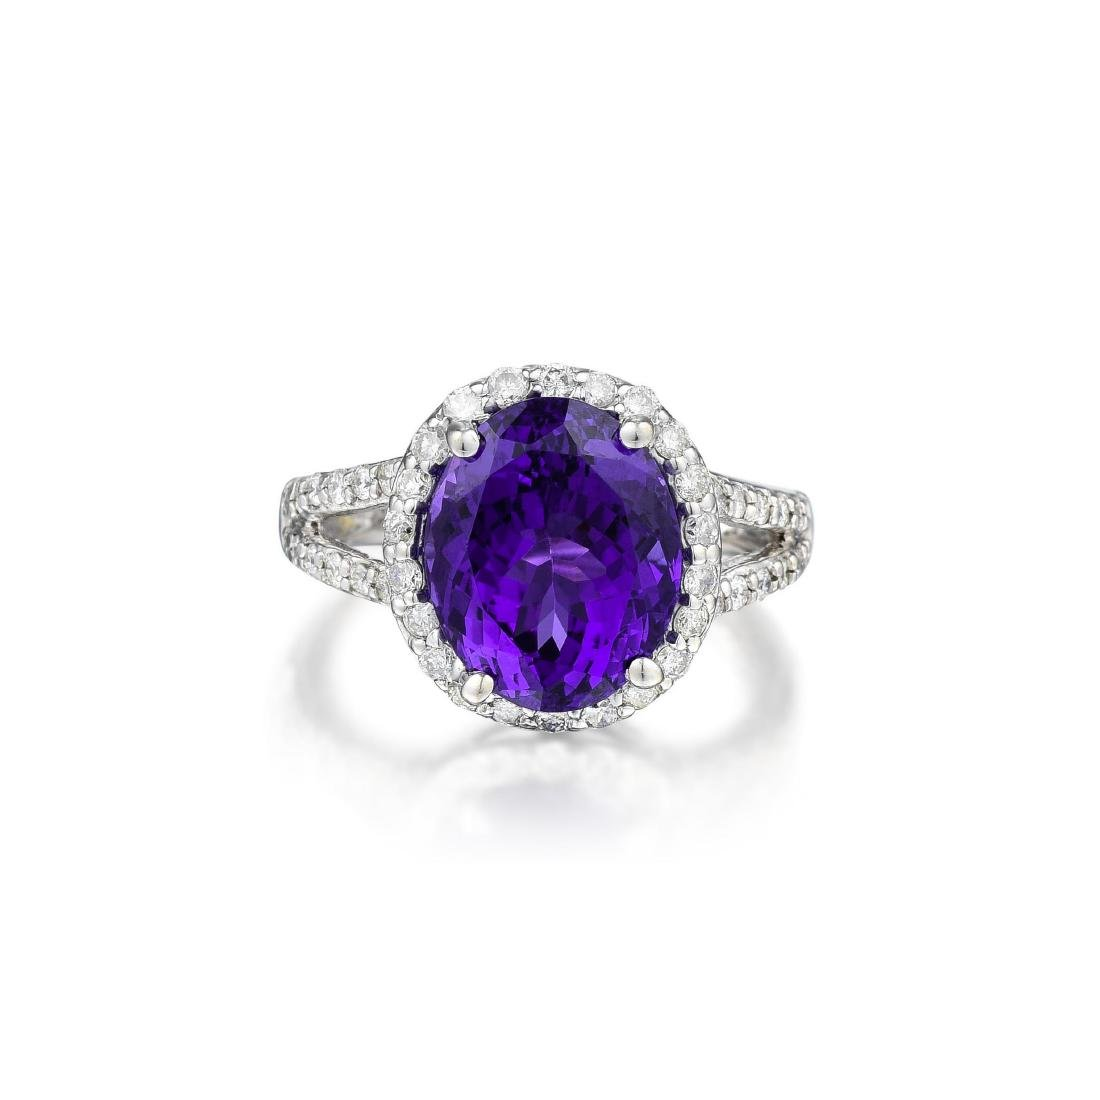 A 14K White Gold Tanzanite and Diamond Ring